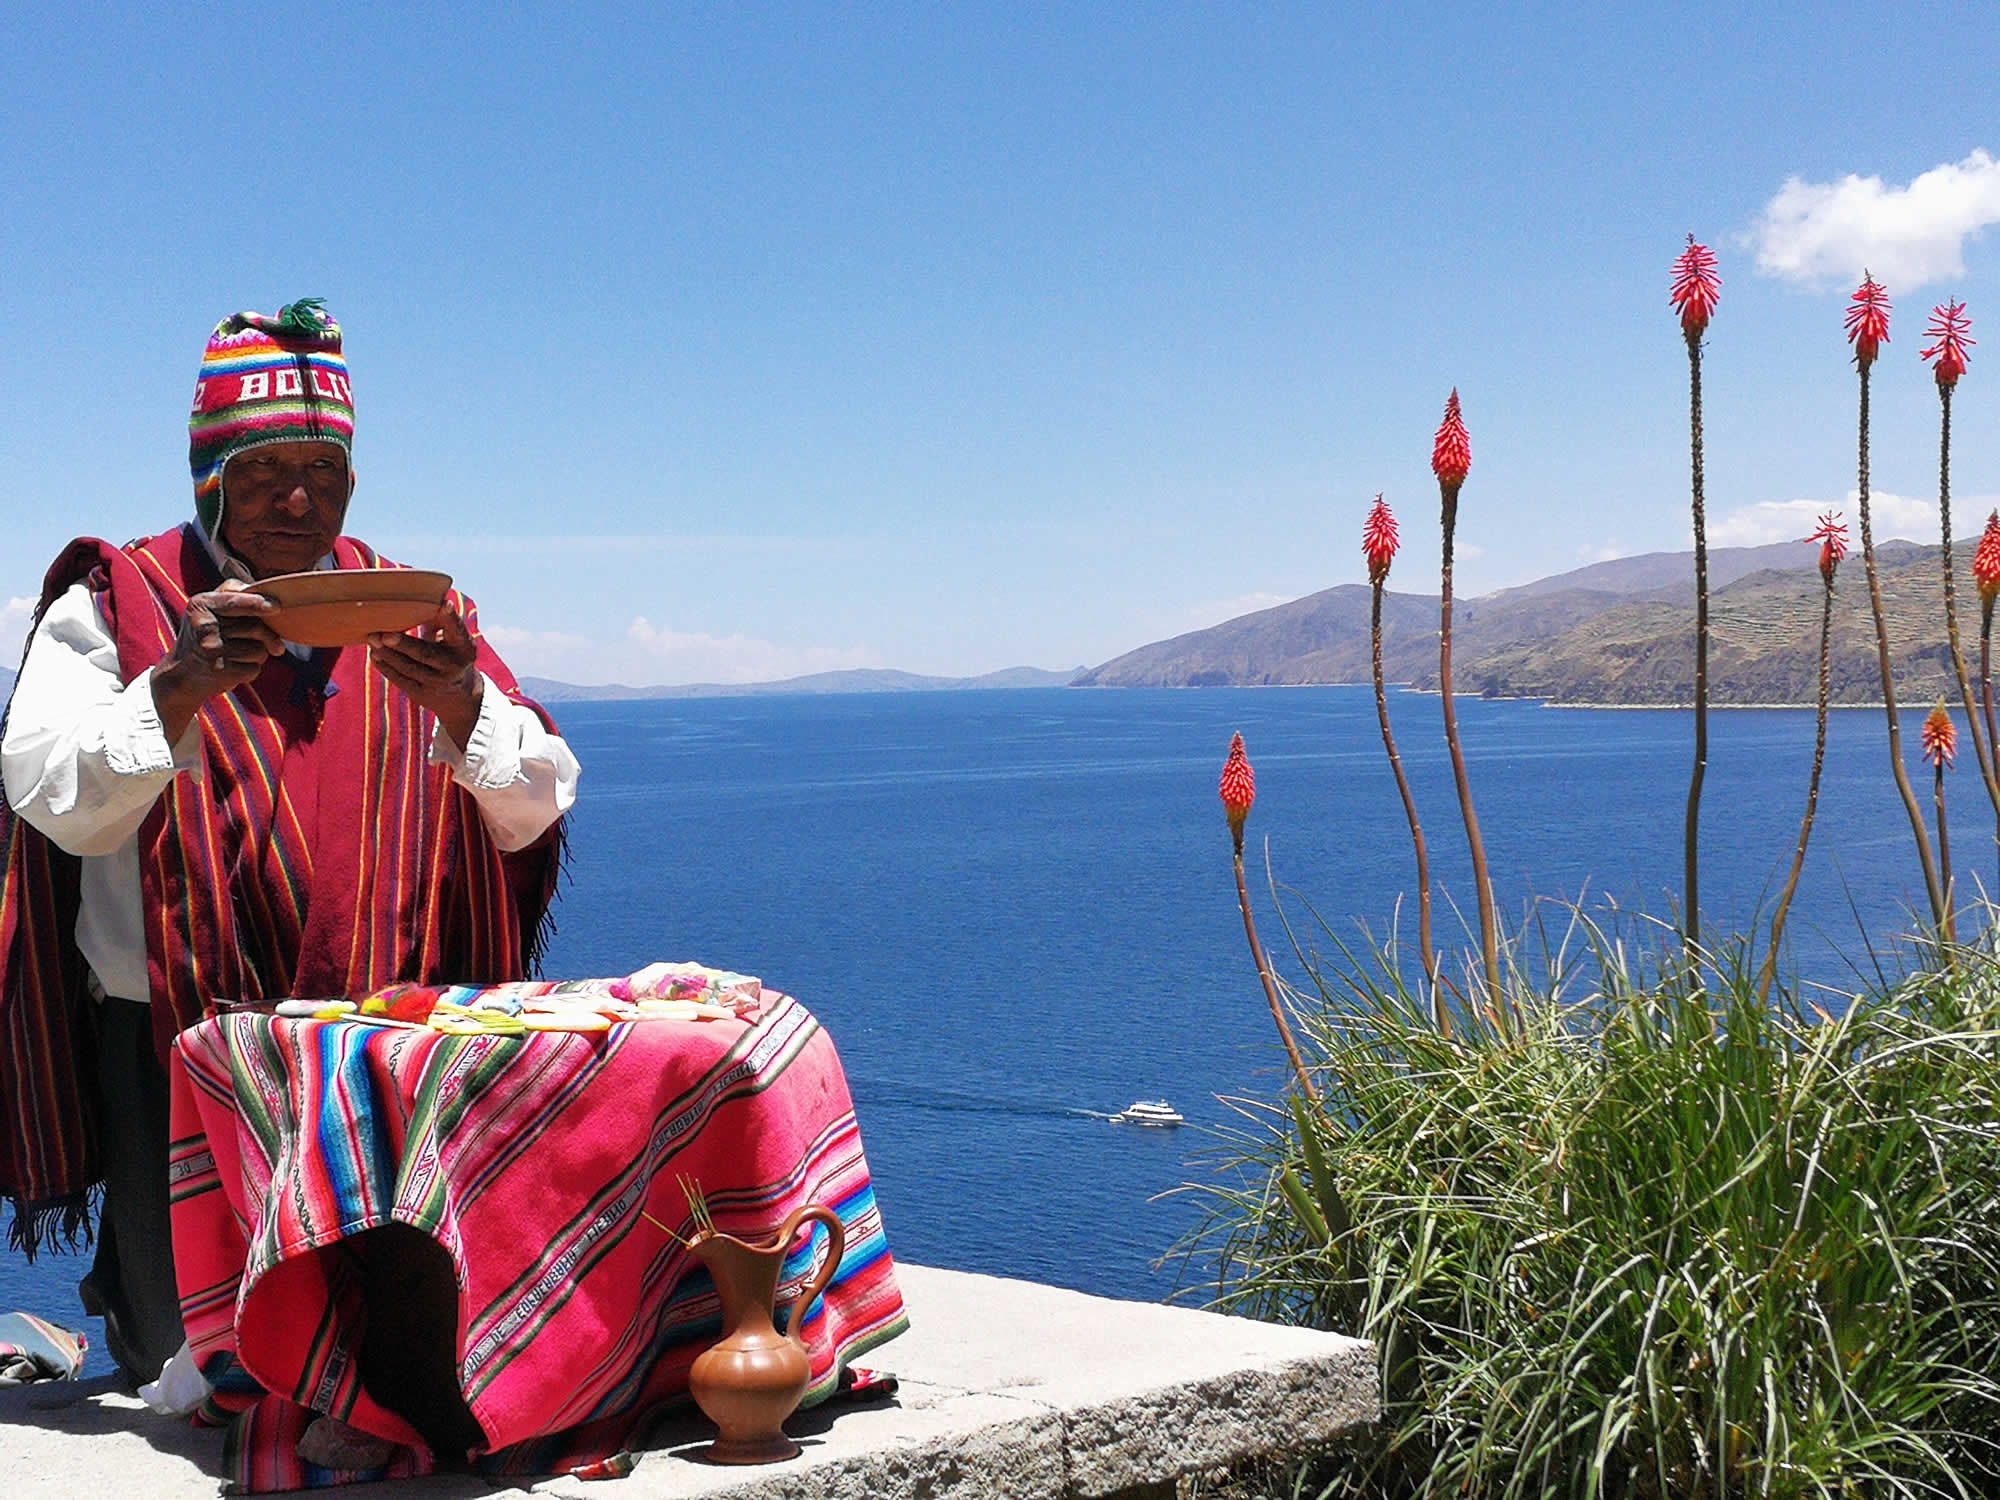 La Paz - Copacabana - Isla del Sol - Puno Shared Tour, Lake Titicaca Tours, La Paz